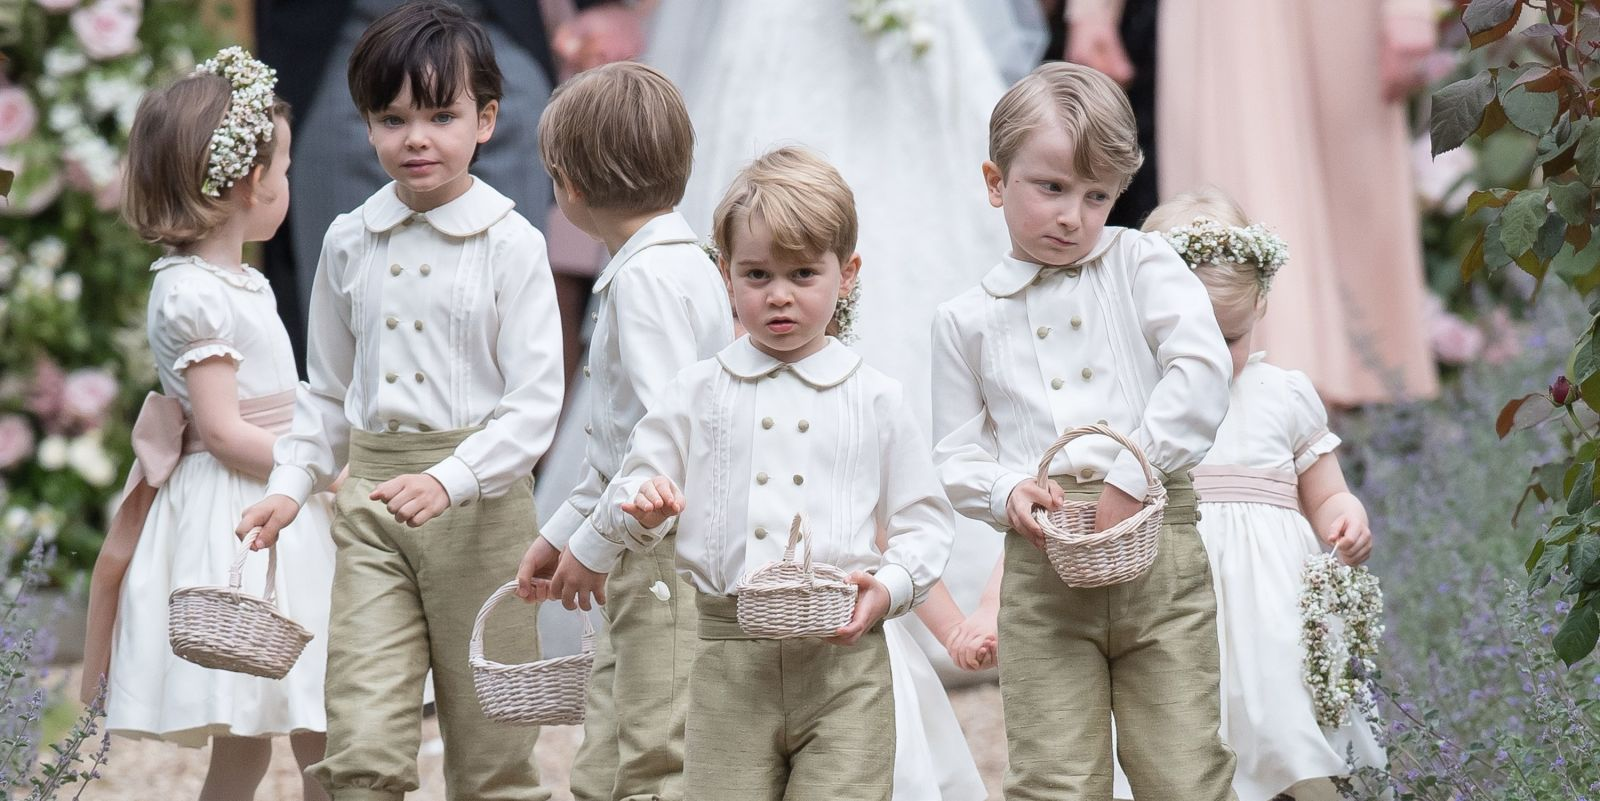 18 Funniest Tweets About Pippa Middleton's Wedding